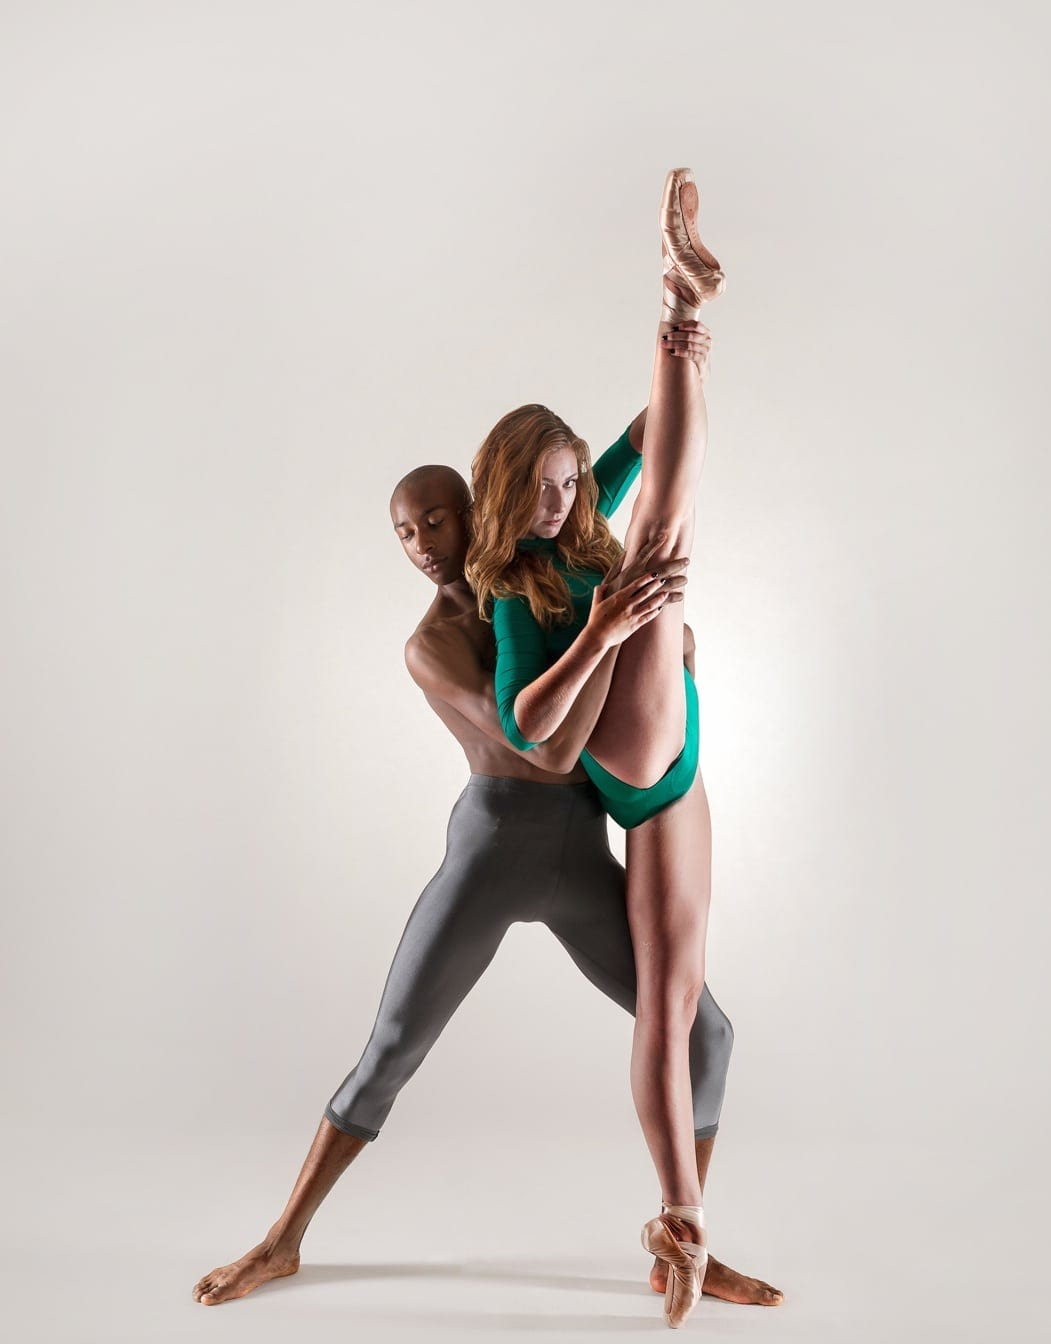 Jessie Williams and Daniel White perform in a new ballet by Kristy Nilsson set to music by Astor Piazzola